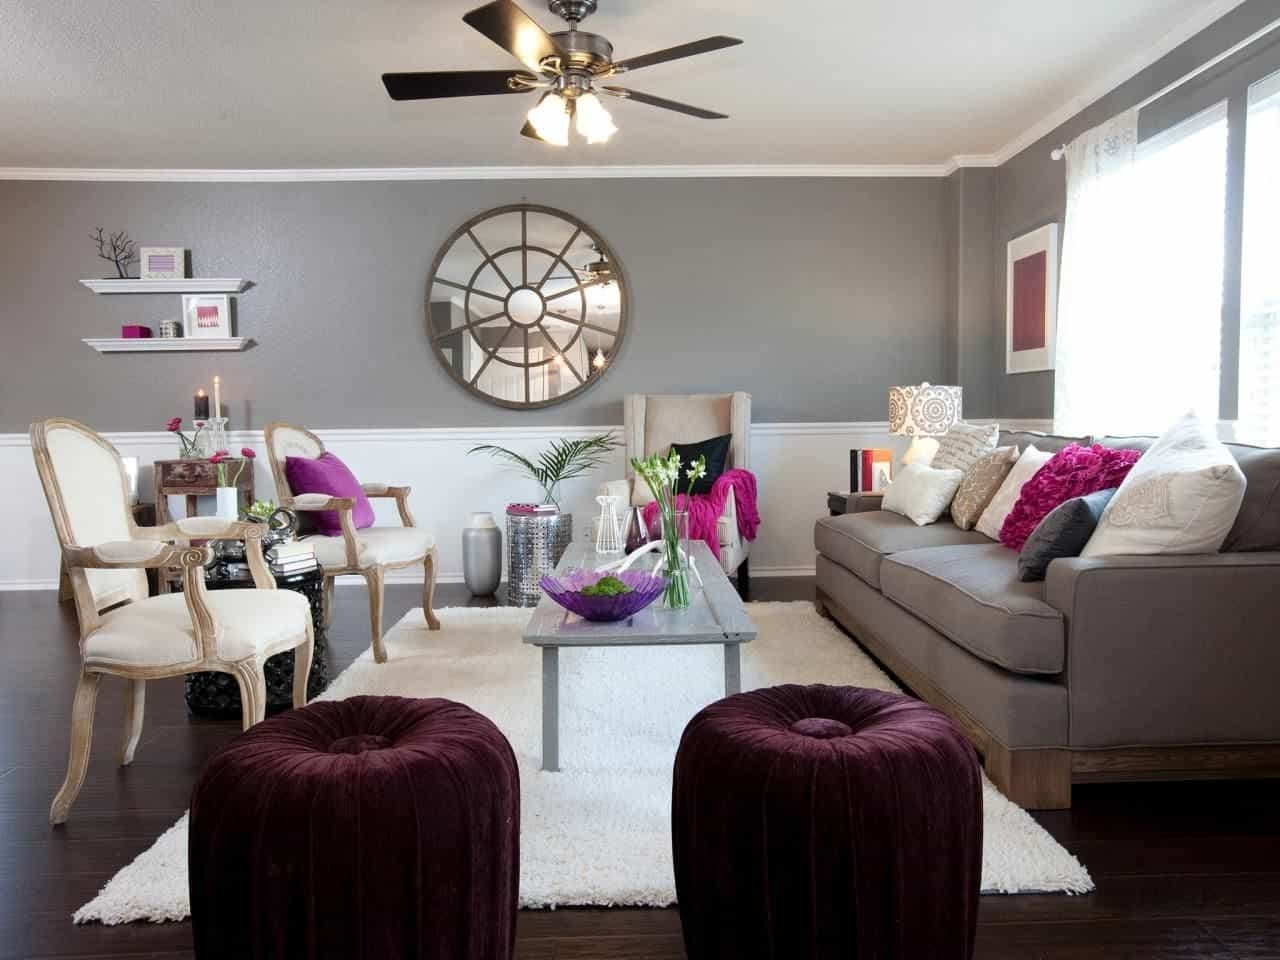 Living Room With Grey Wall Colors And Purple Accents – Colors That Pertaining To Widely Used Wall Colors And Accents (View 5 of 15)